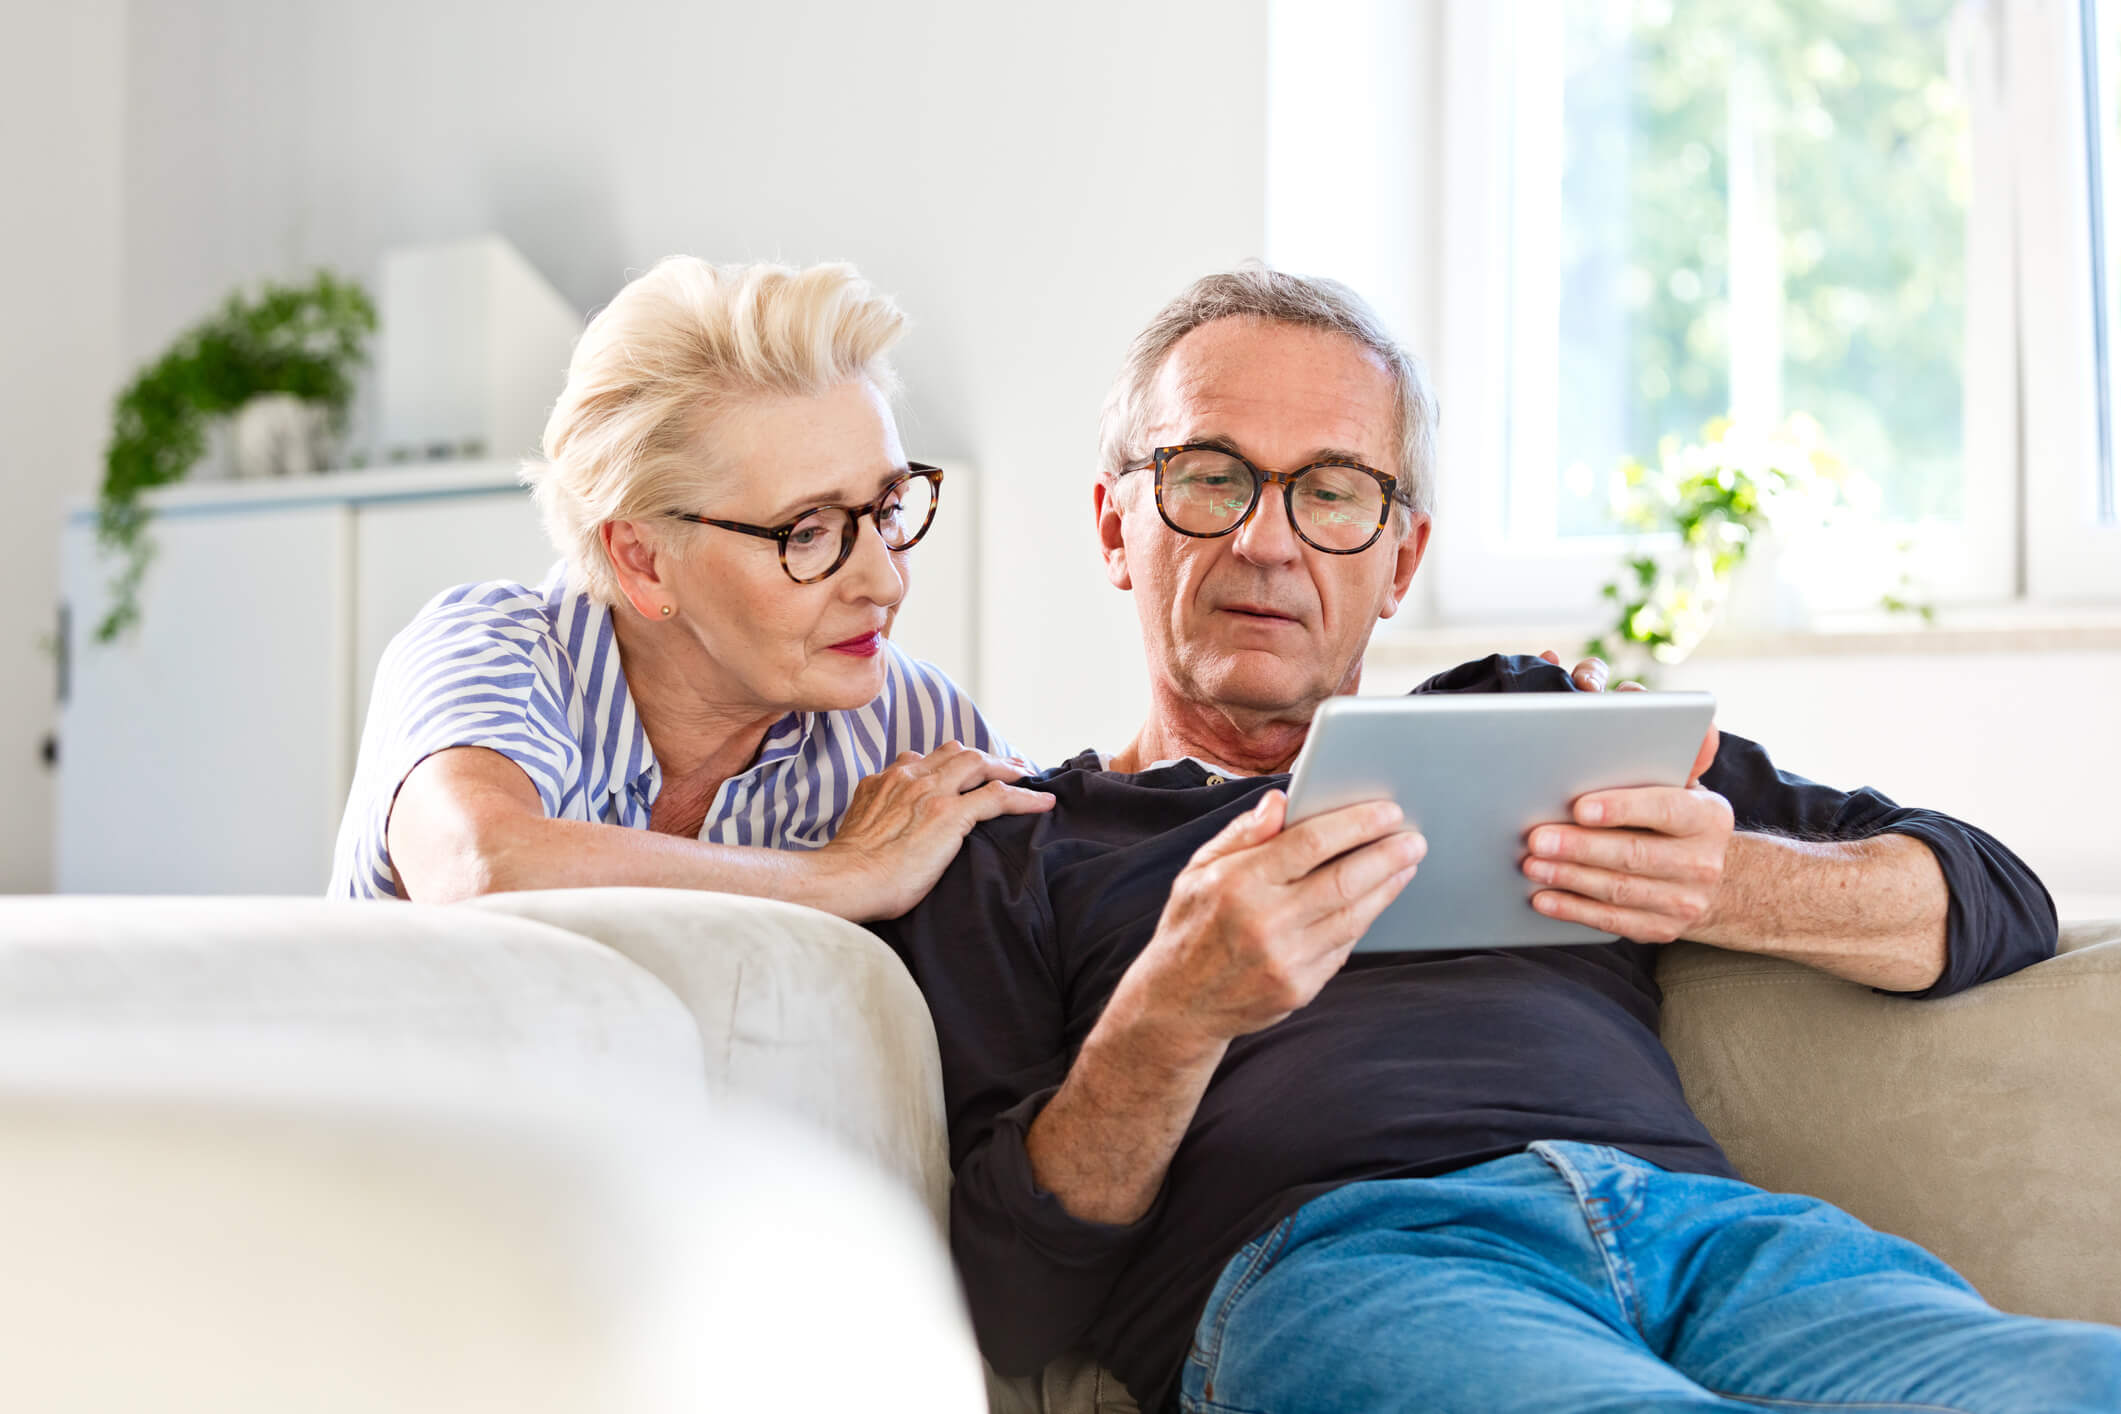 Older adults viewing camera feed on tablet